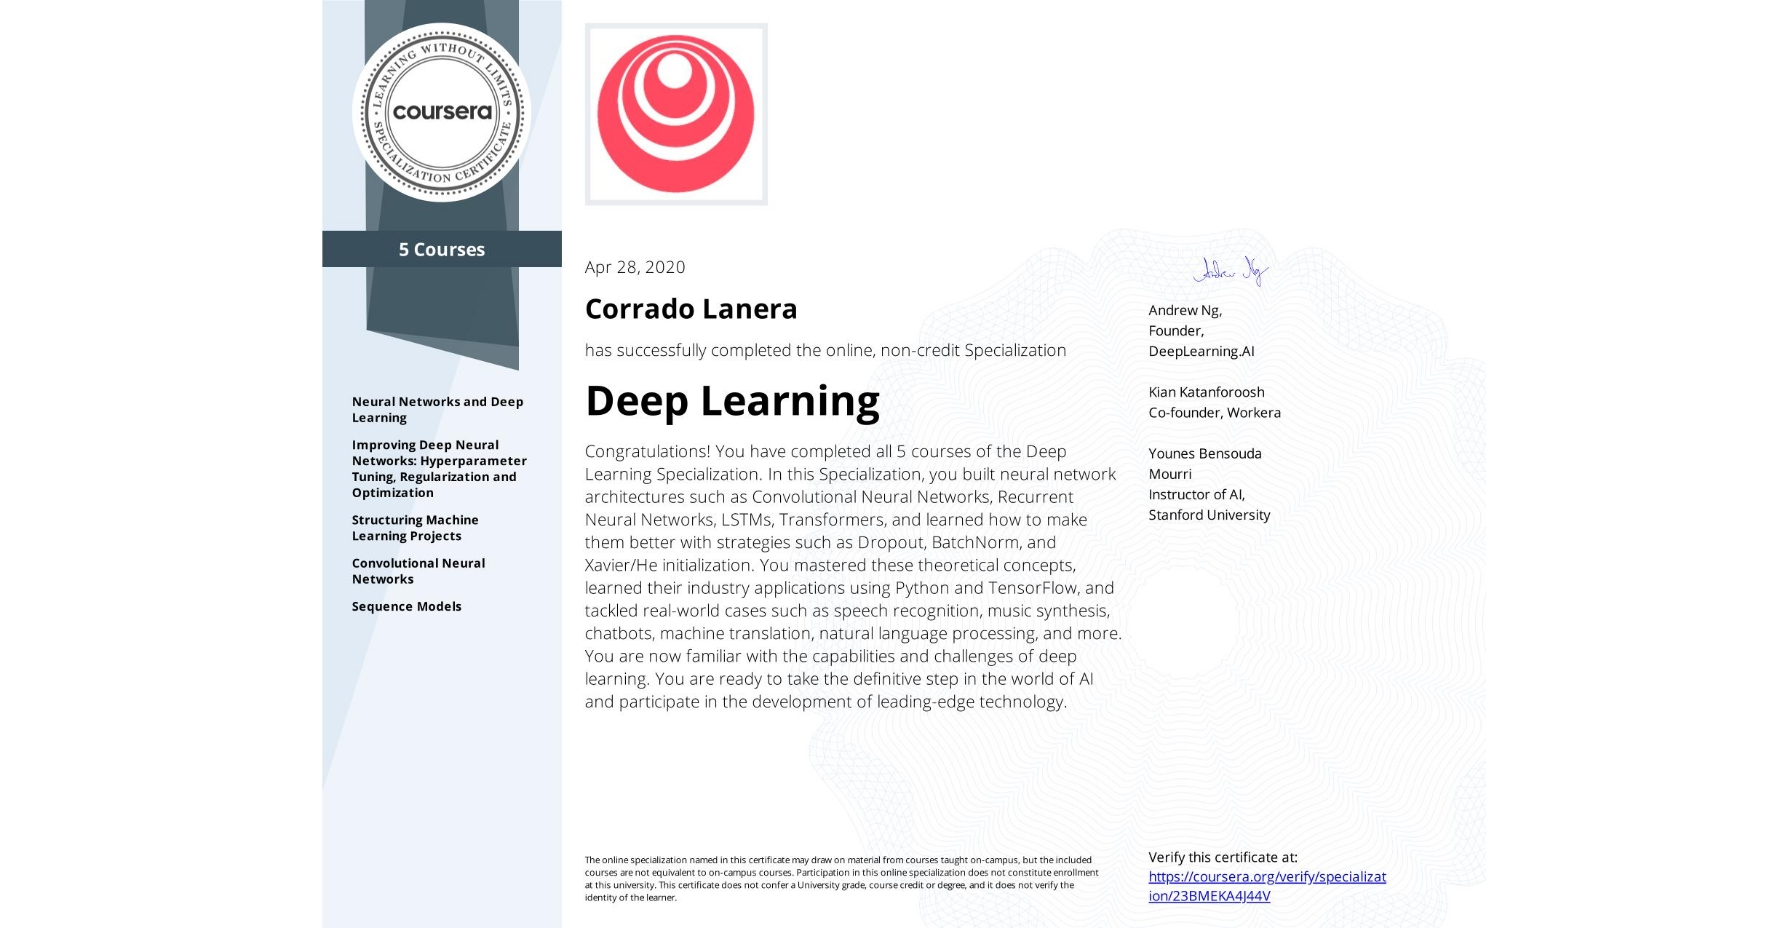 View certificate for Corrado Lanera, Deep Learning, offered through Coursera. The Deep Learning Specialization is designed to prepare learners to participate in the development of cutting-edge AI technology, and to understand the capability, the challenges, and the consequences of the rise of deep learning. Through five interconnected courses, learners develop a profound knowledge of the hottest AI algorithms, mastering deep learning from its foundations (neural networks) to its industry applications (Computer Vision, Natural Language Processing, Speech Recognition, etc.).